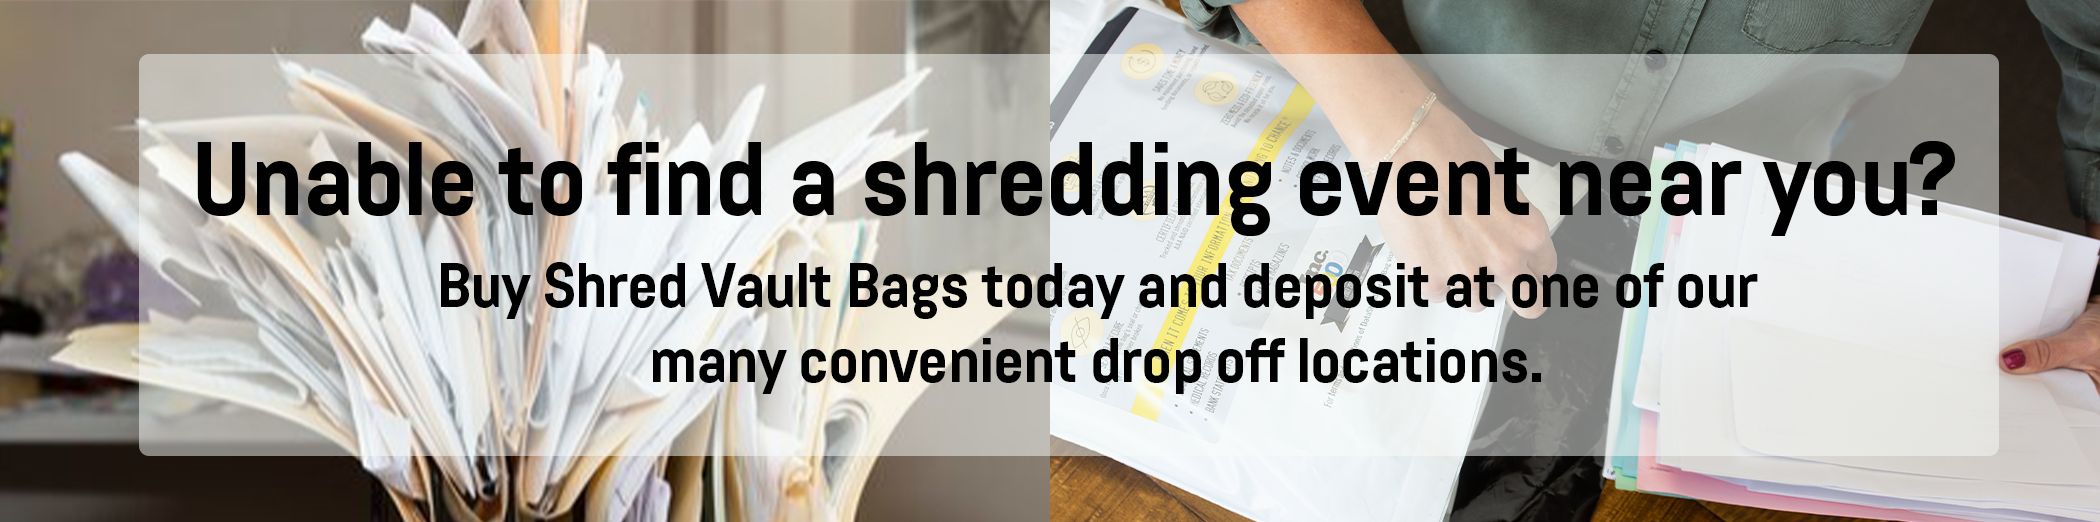 unable to find a shredding event near you? Buy shred vault bags today and deposit at one of our many convenient drop off locations